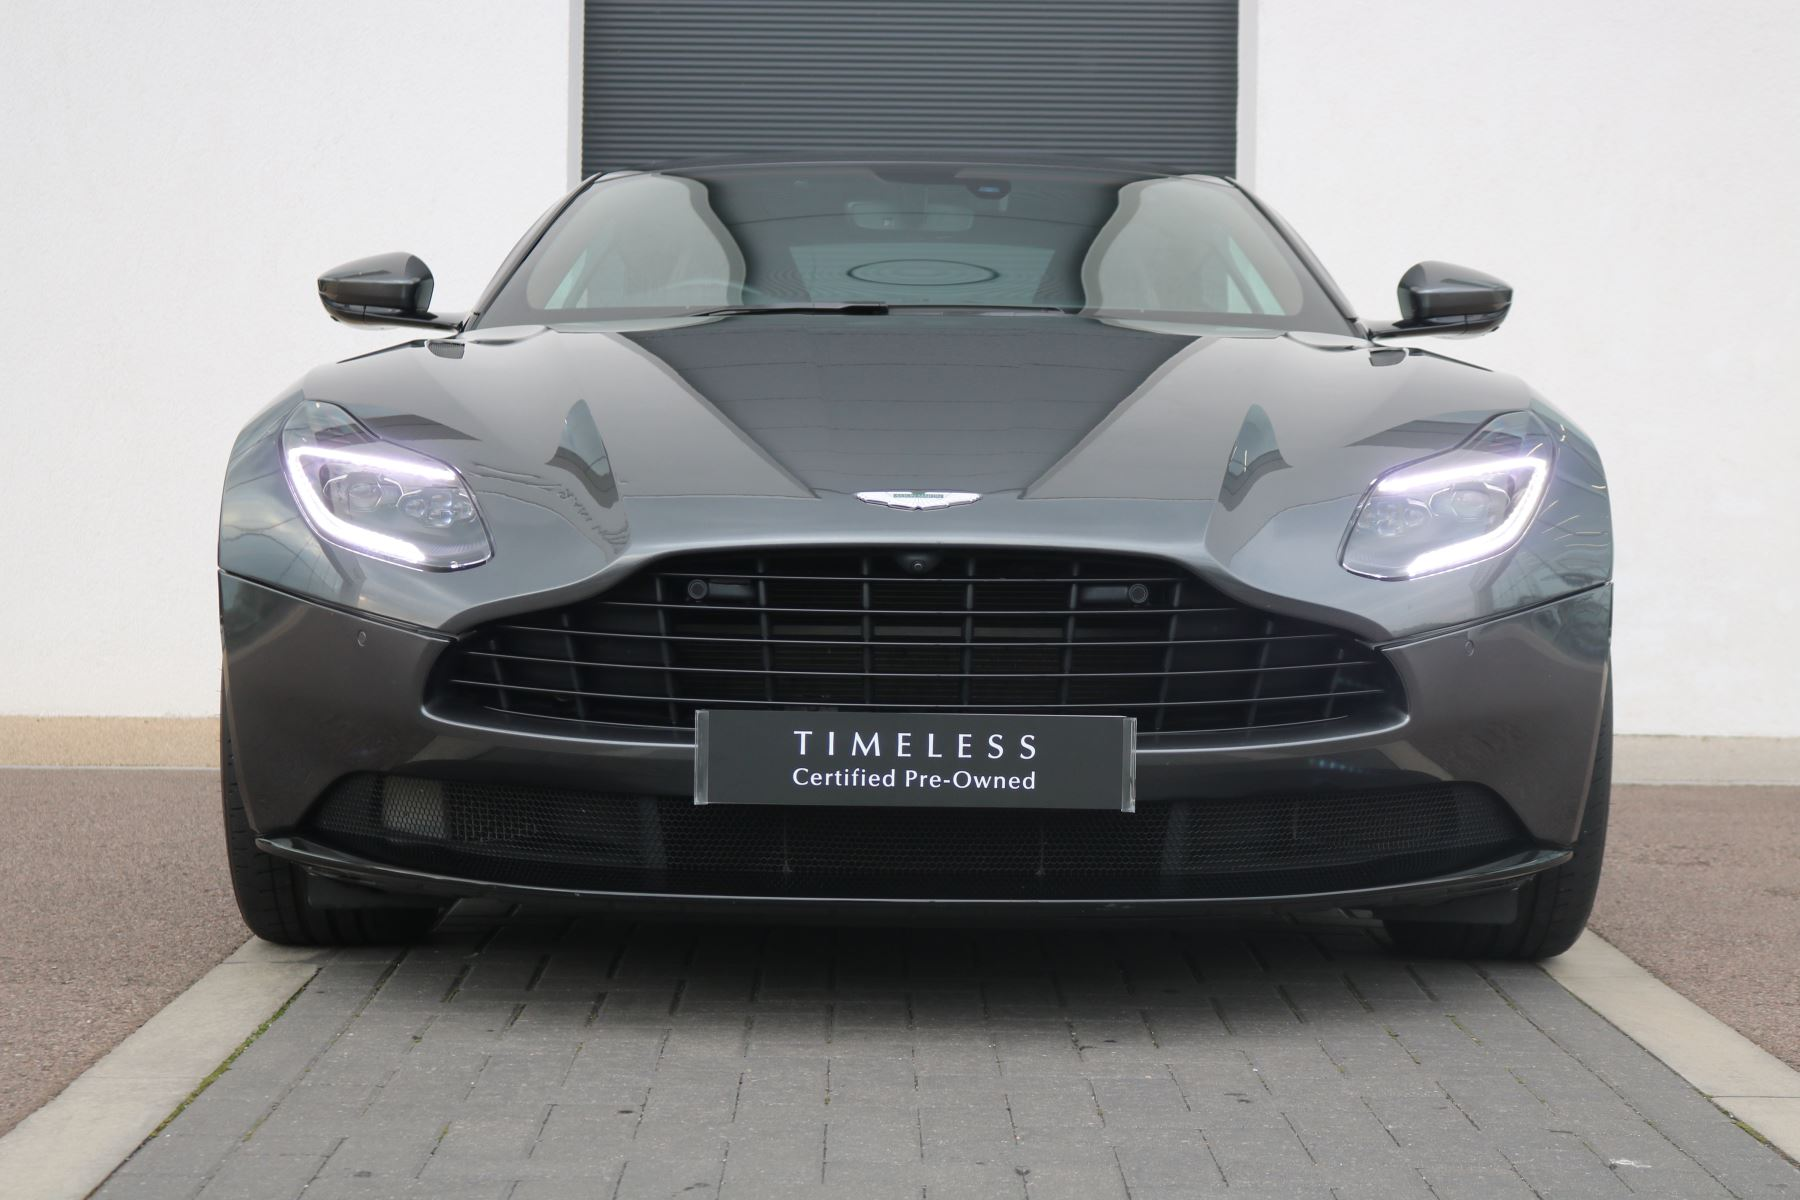 Aston Martin DB11 V8 Touchtronic Coupe 1 OWNER LOW MILEAGE 4.0 Automatic 2 door (2019)